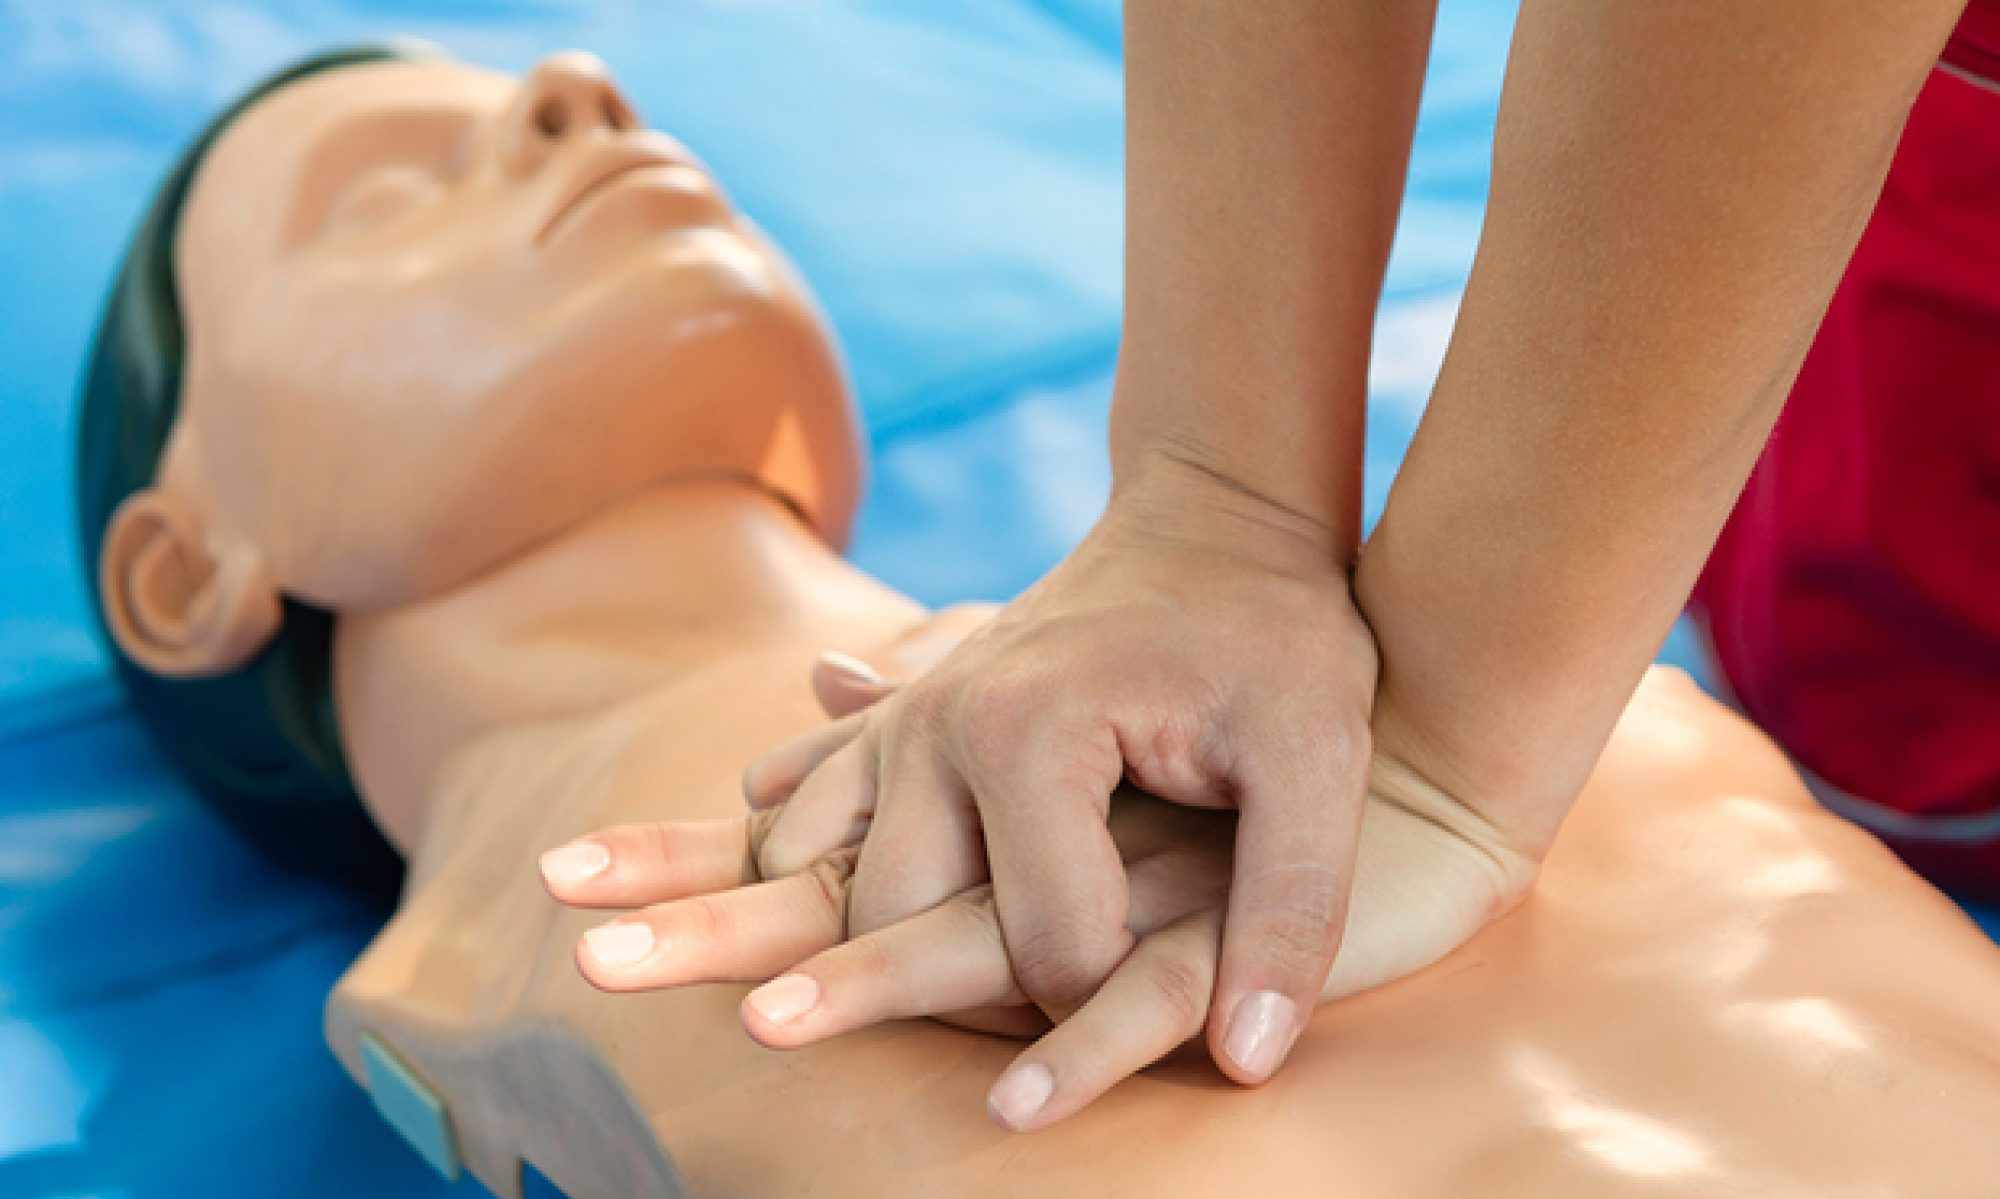 cpr training 2000x1199